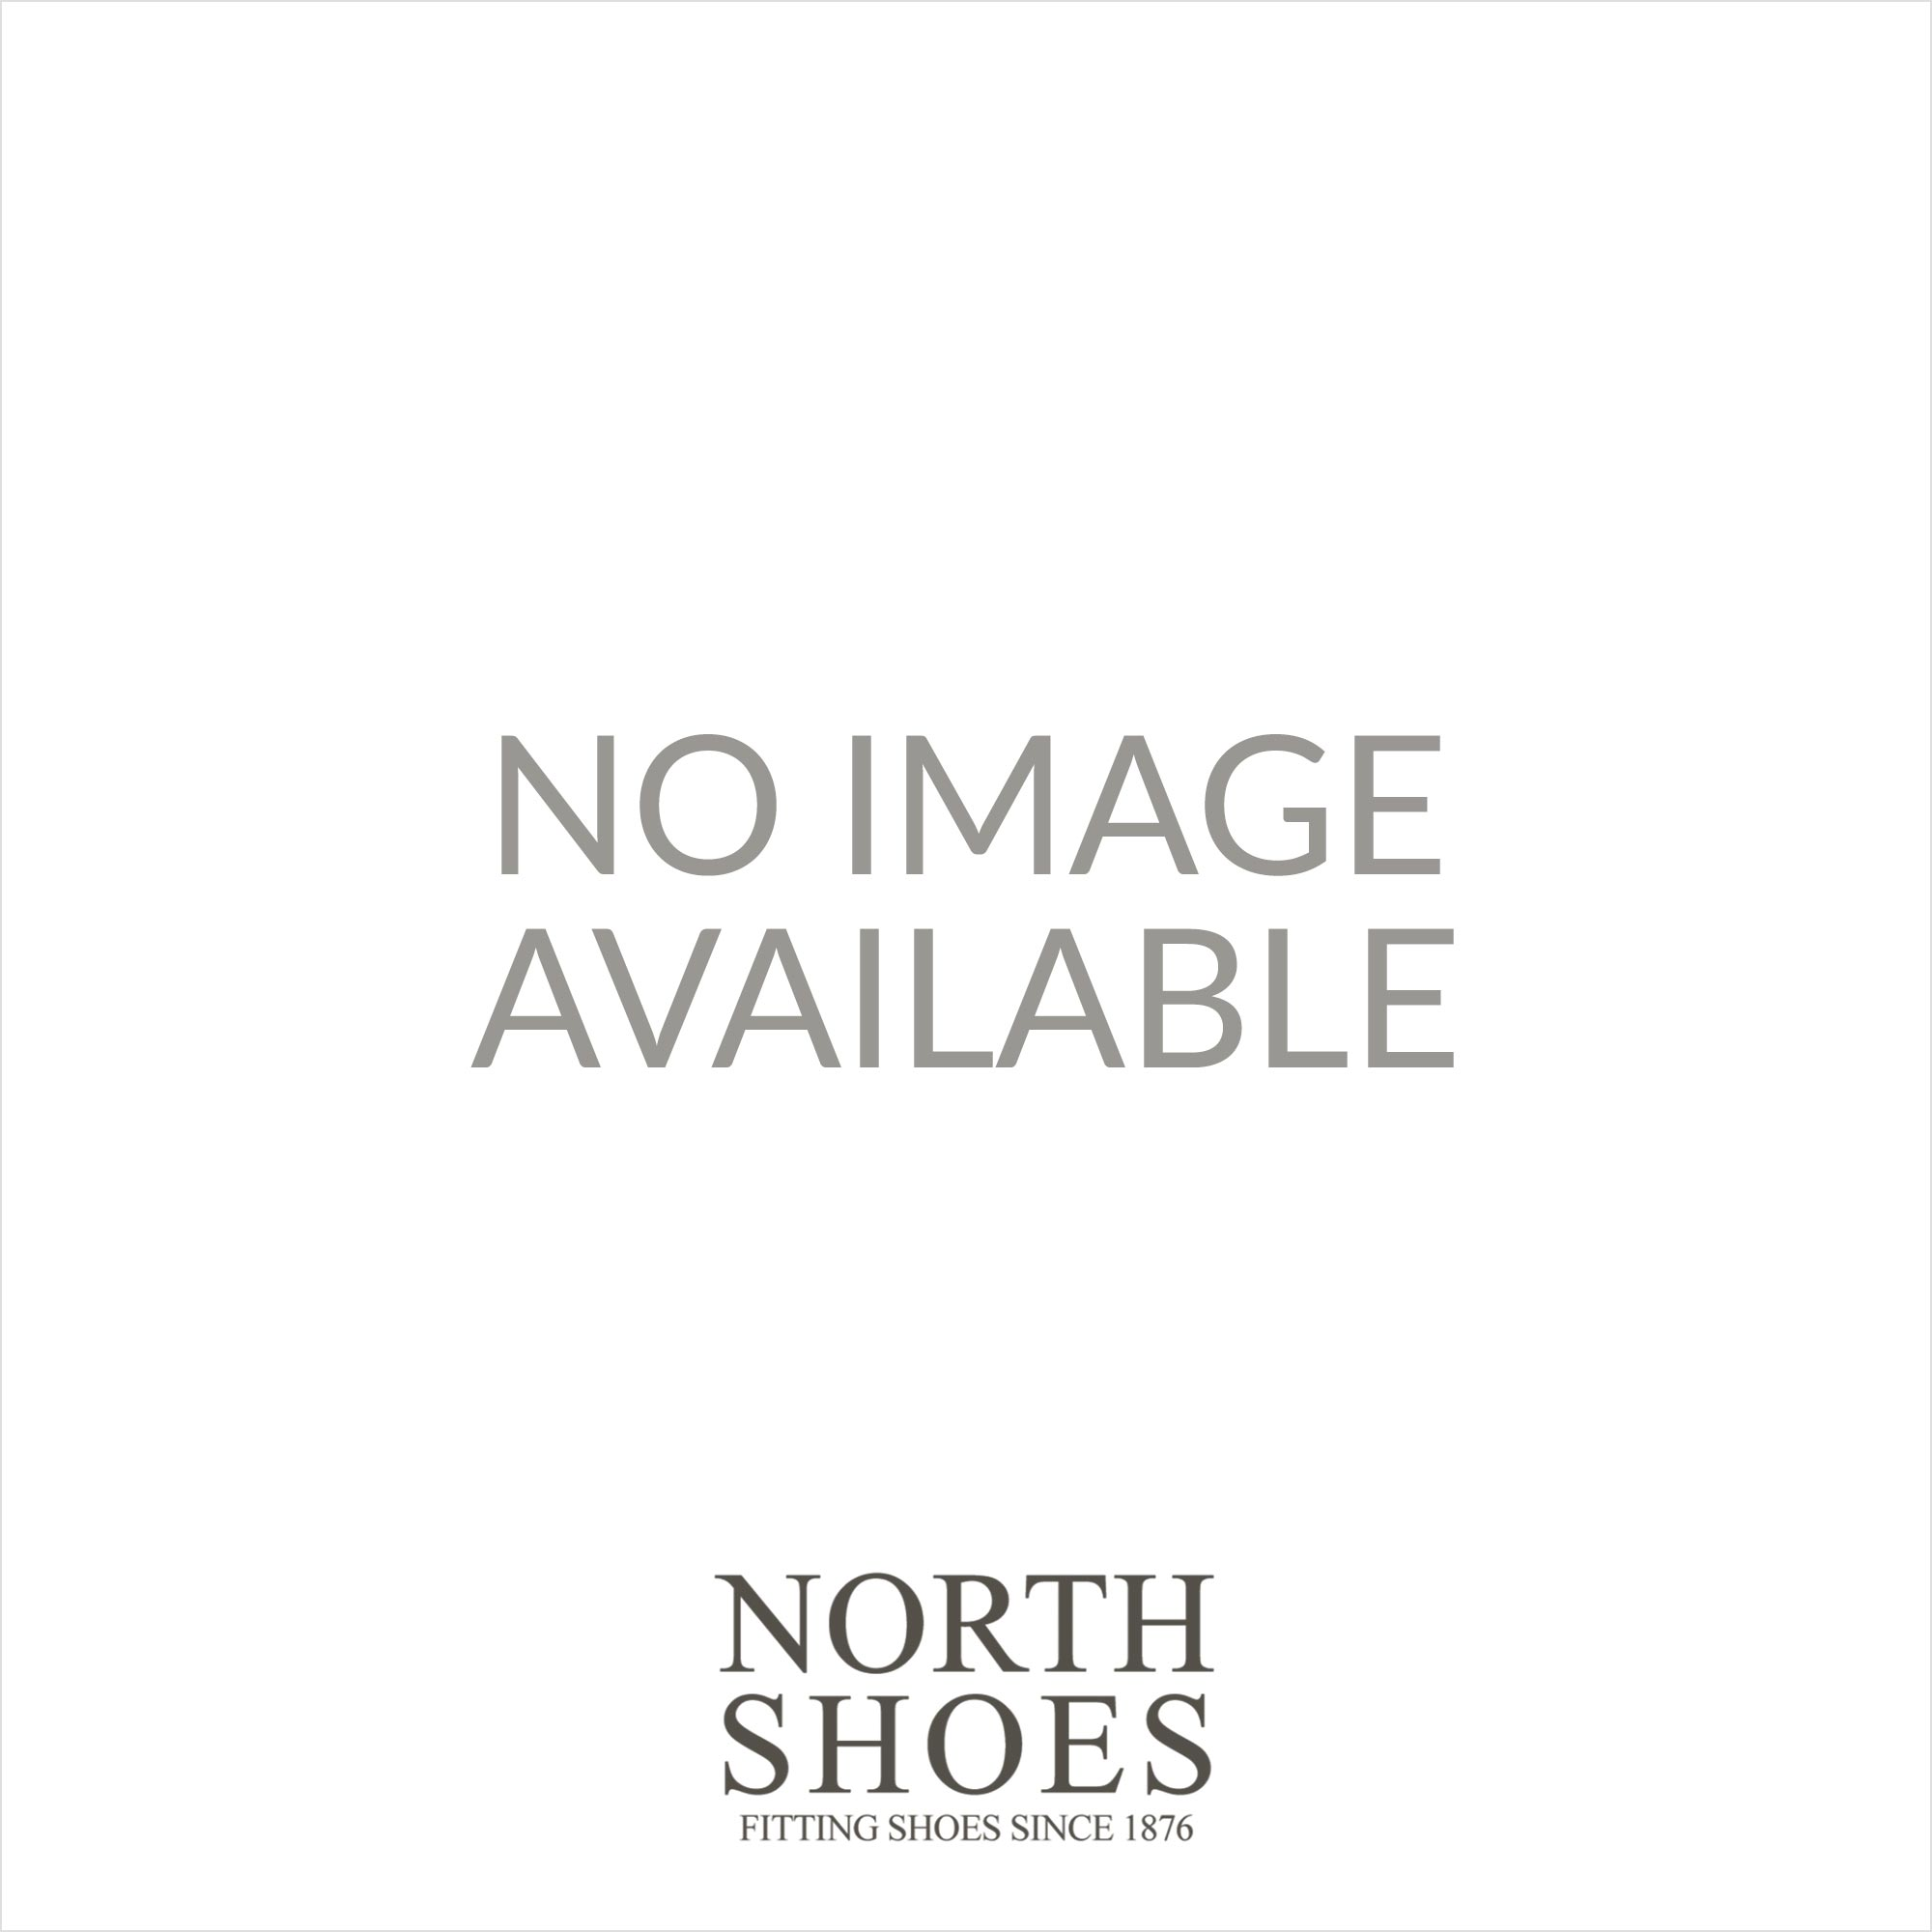 d1d3a674a6346 Caprice 25521-21 Black Leather Womens Long Leg Boot - Caprice from North  Shoes UK